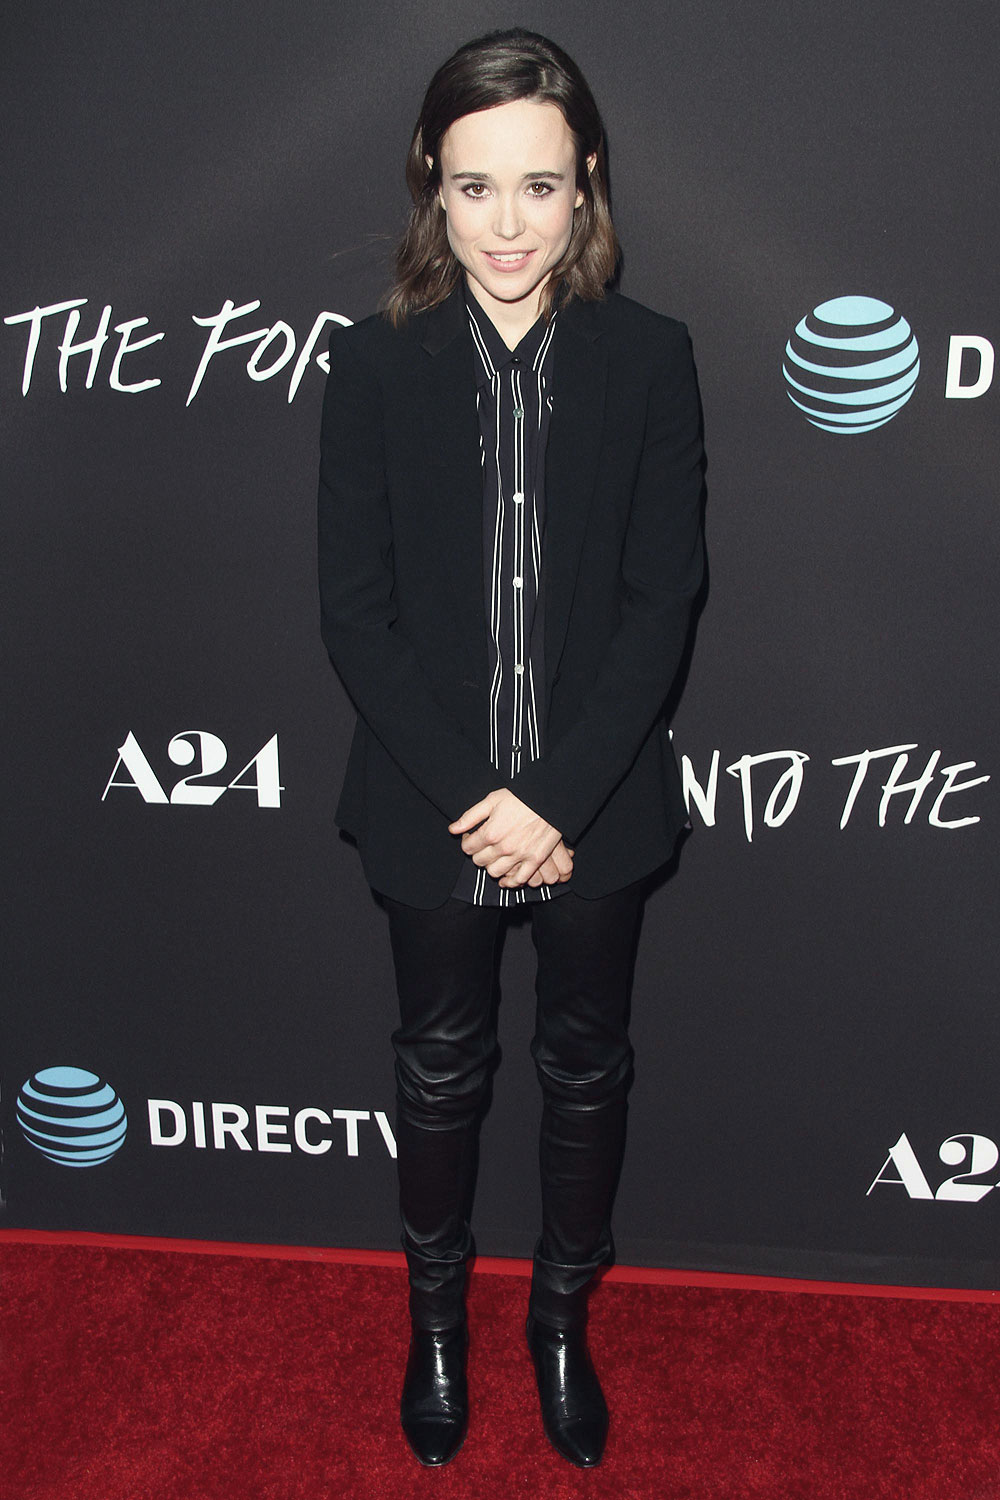 Ellen Page Attends A24 Into The Forest Premiere Leather